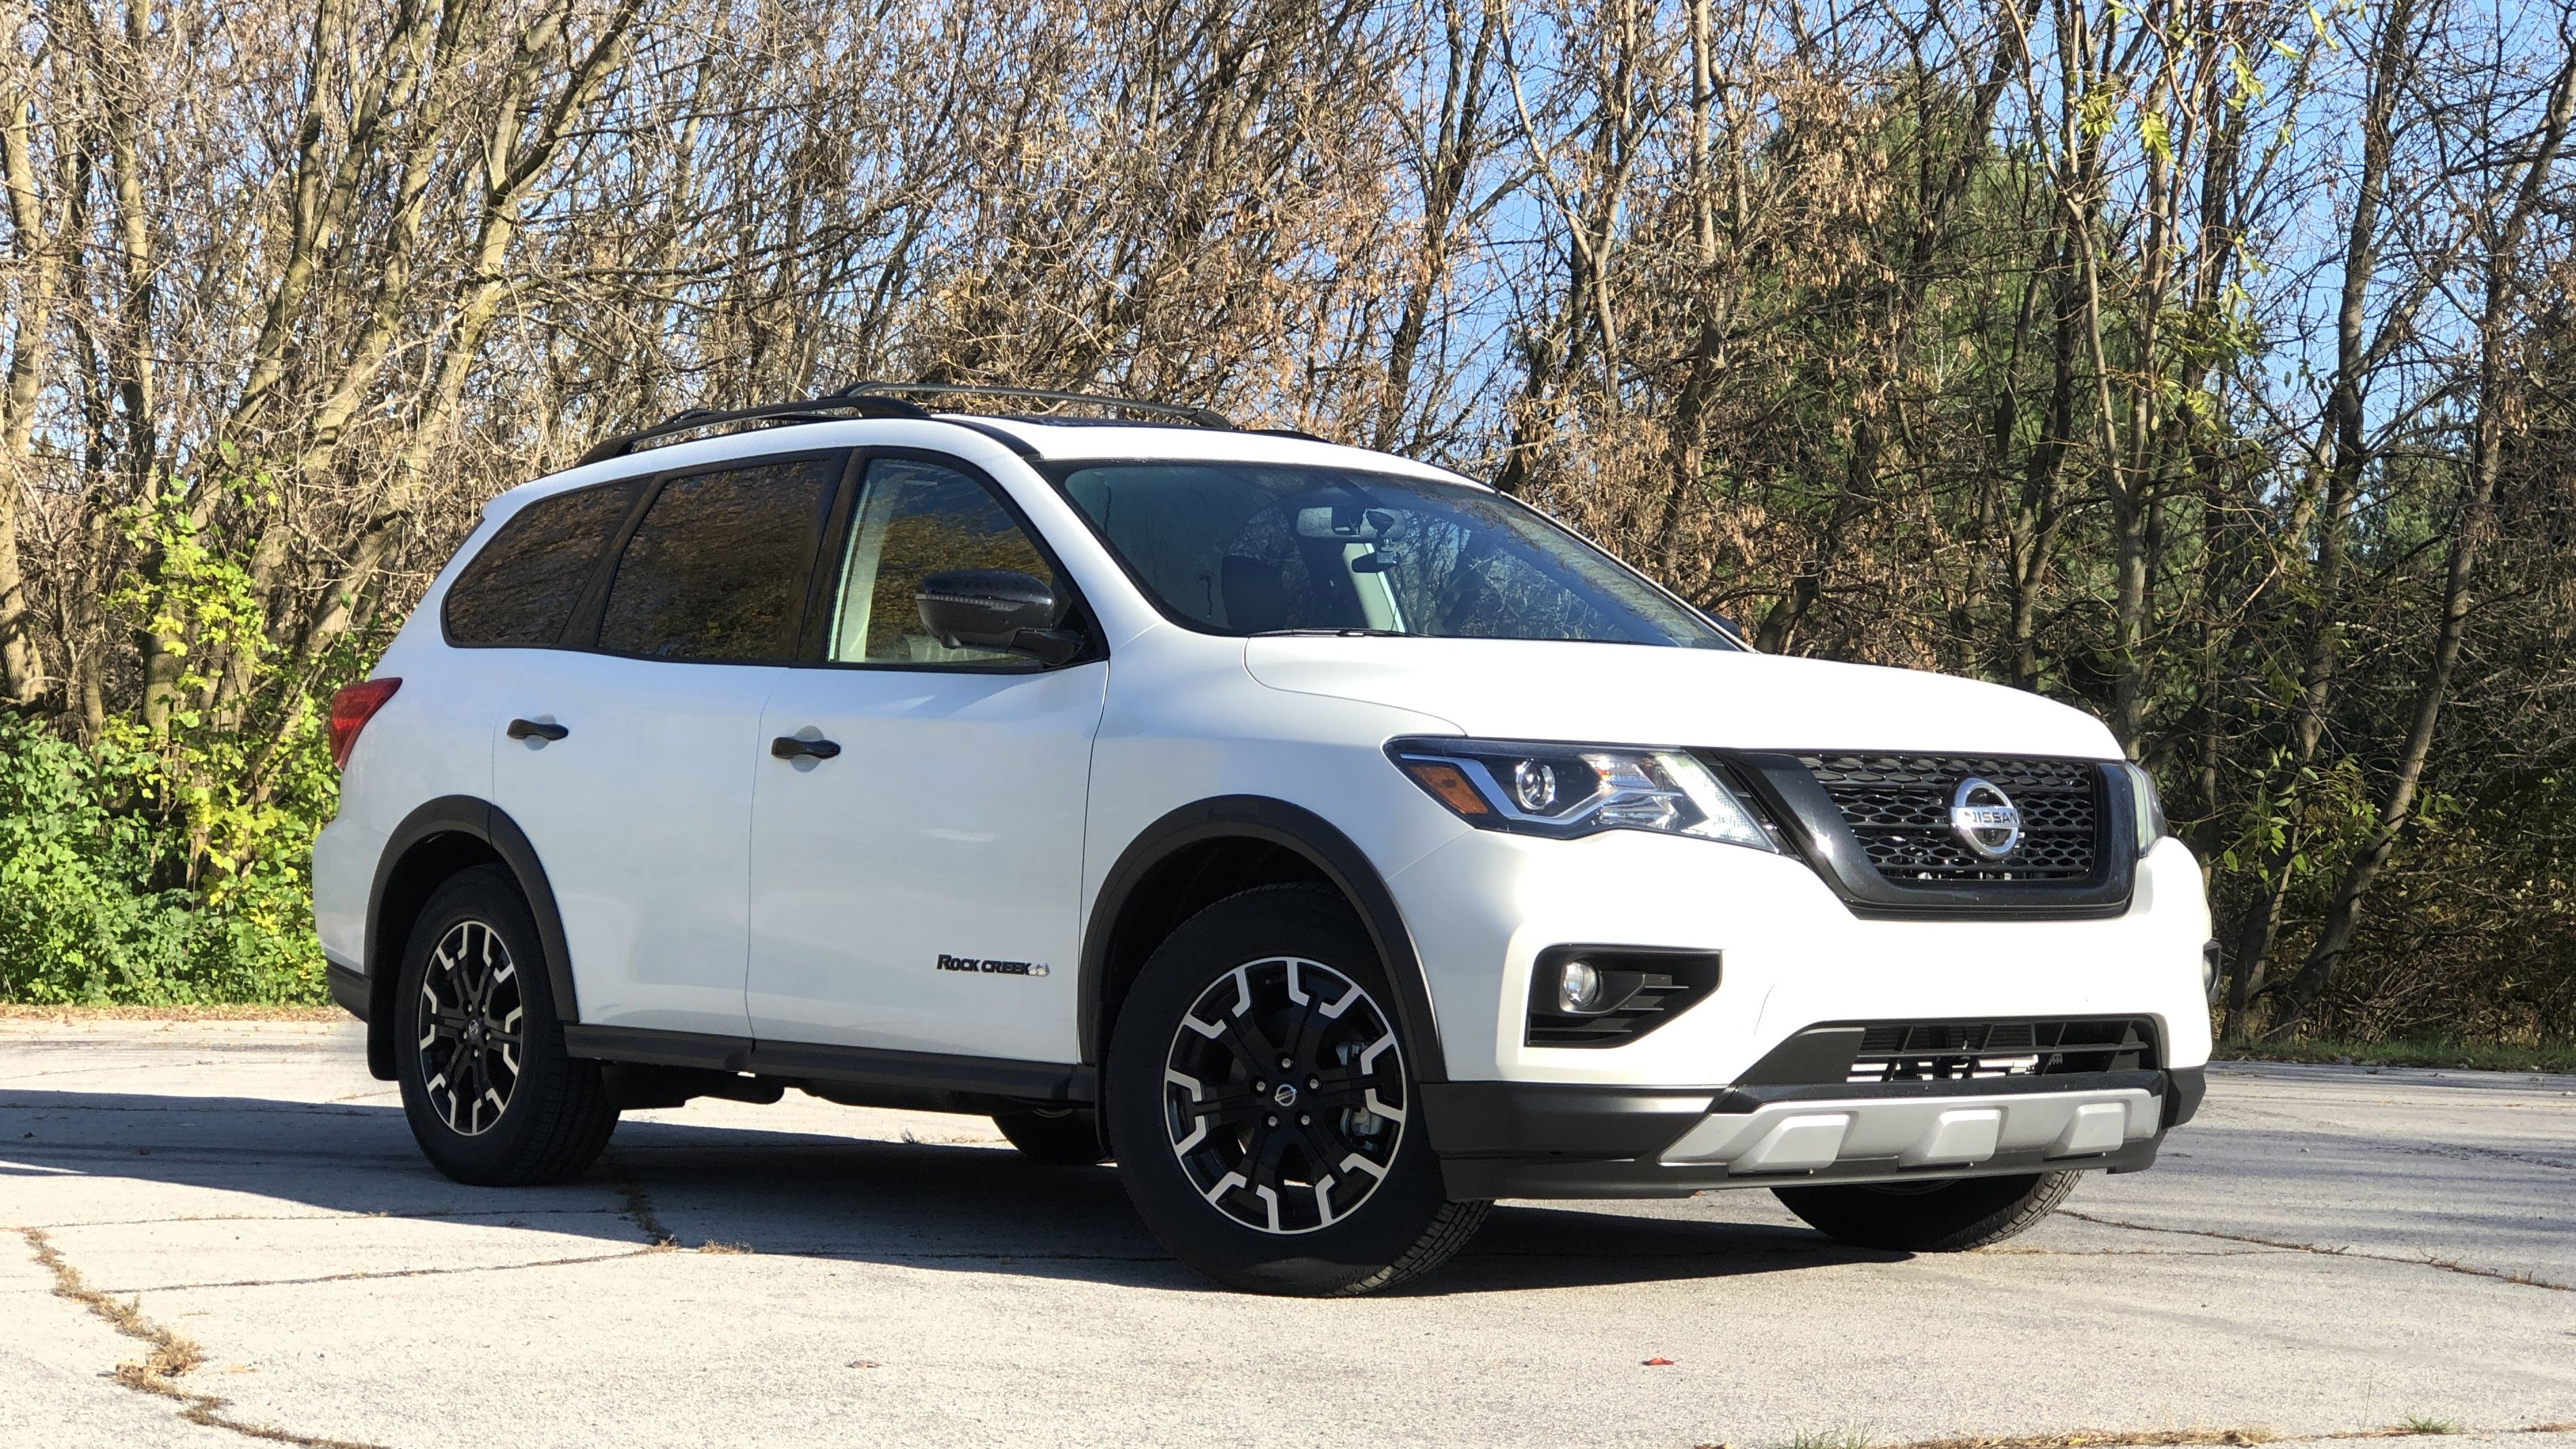 2020 Nissan Pathfinder Rock Creek Edition Review A Faux Off Roader Nissan Pathfinder Best New Cars Nissan Pathfinder Reviews